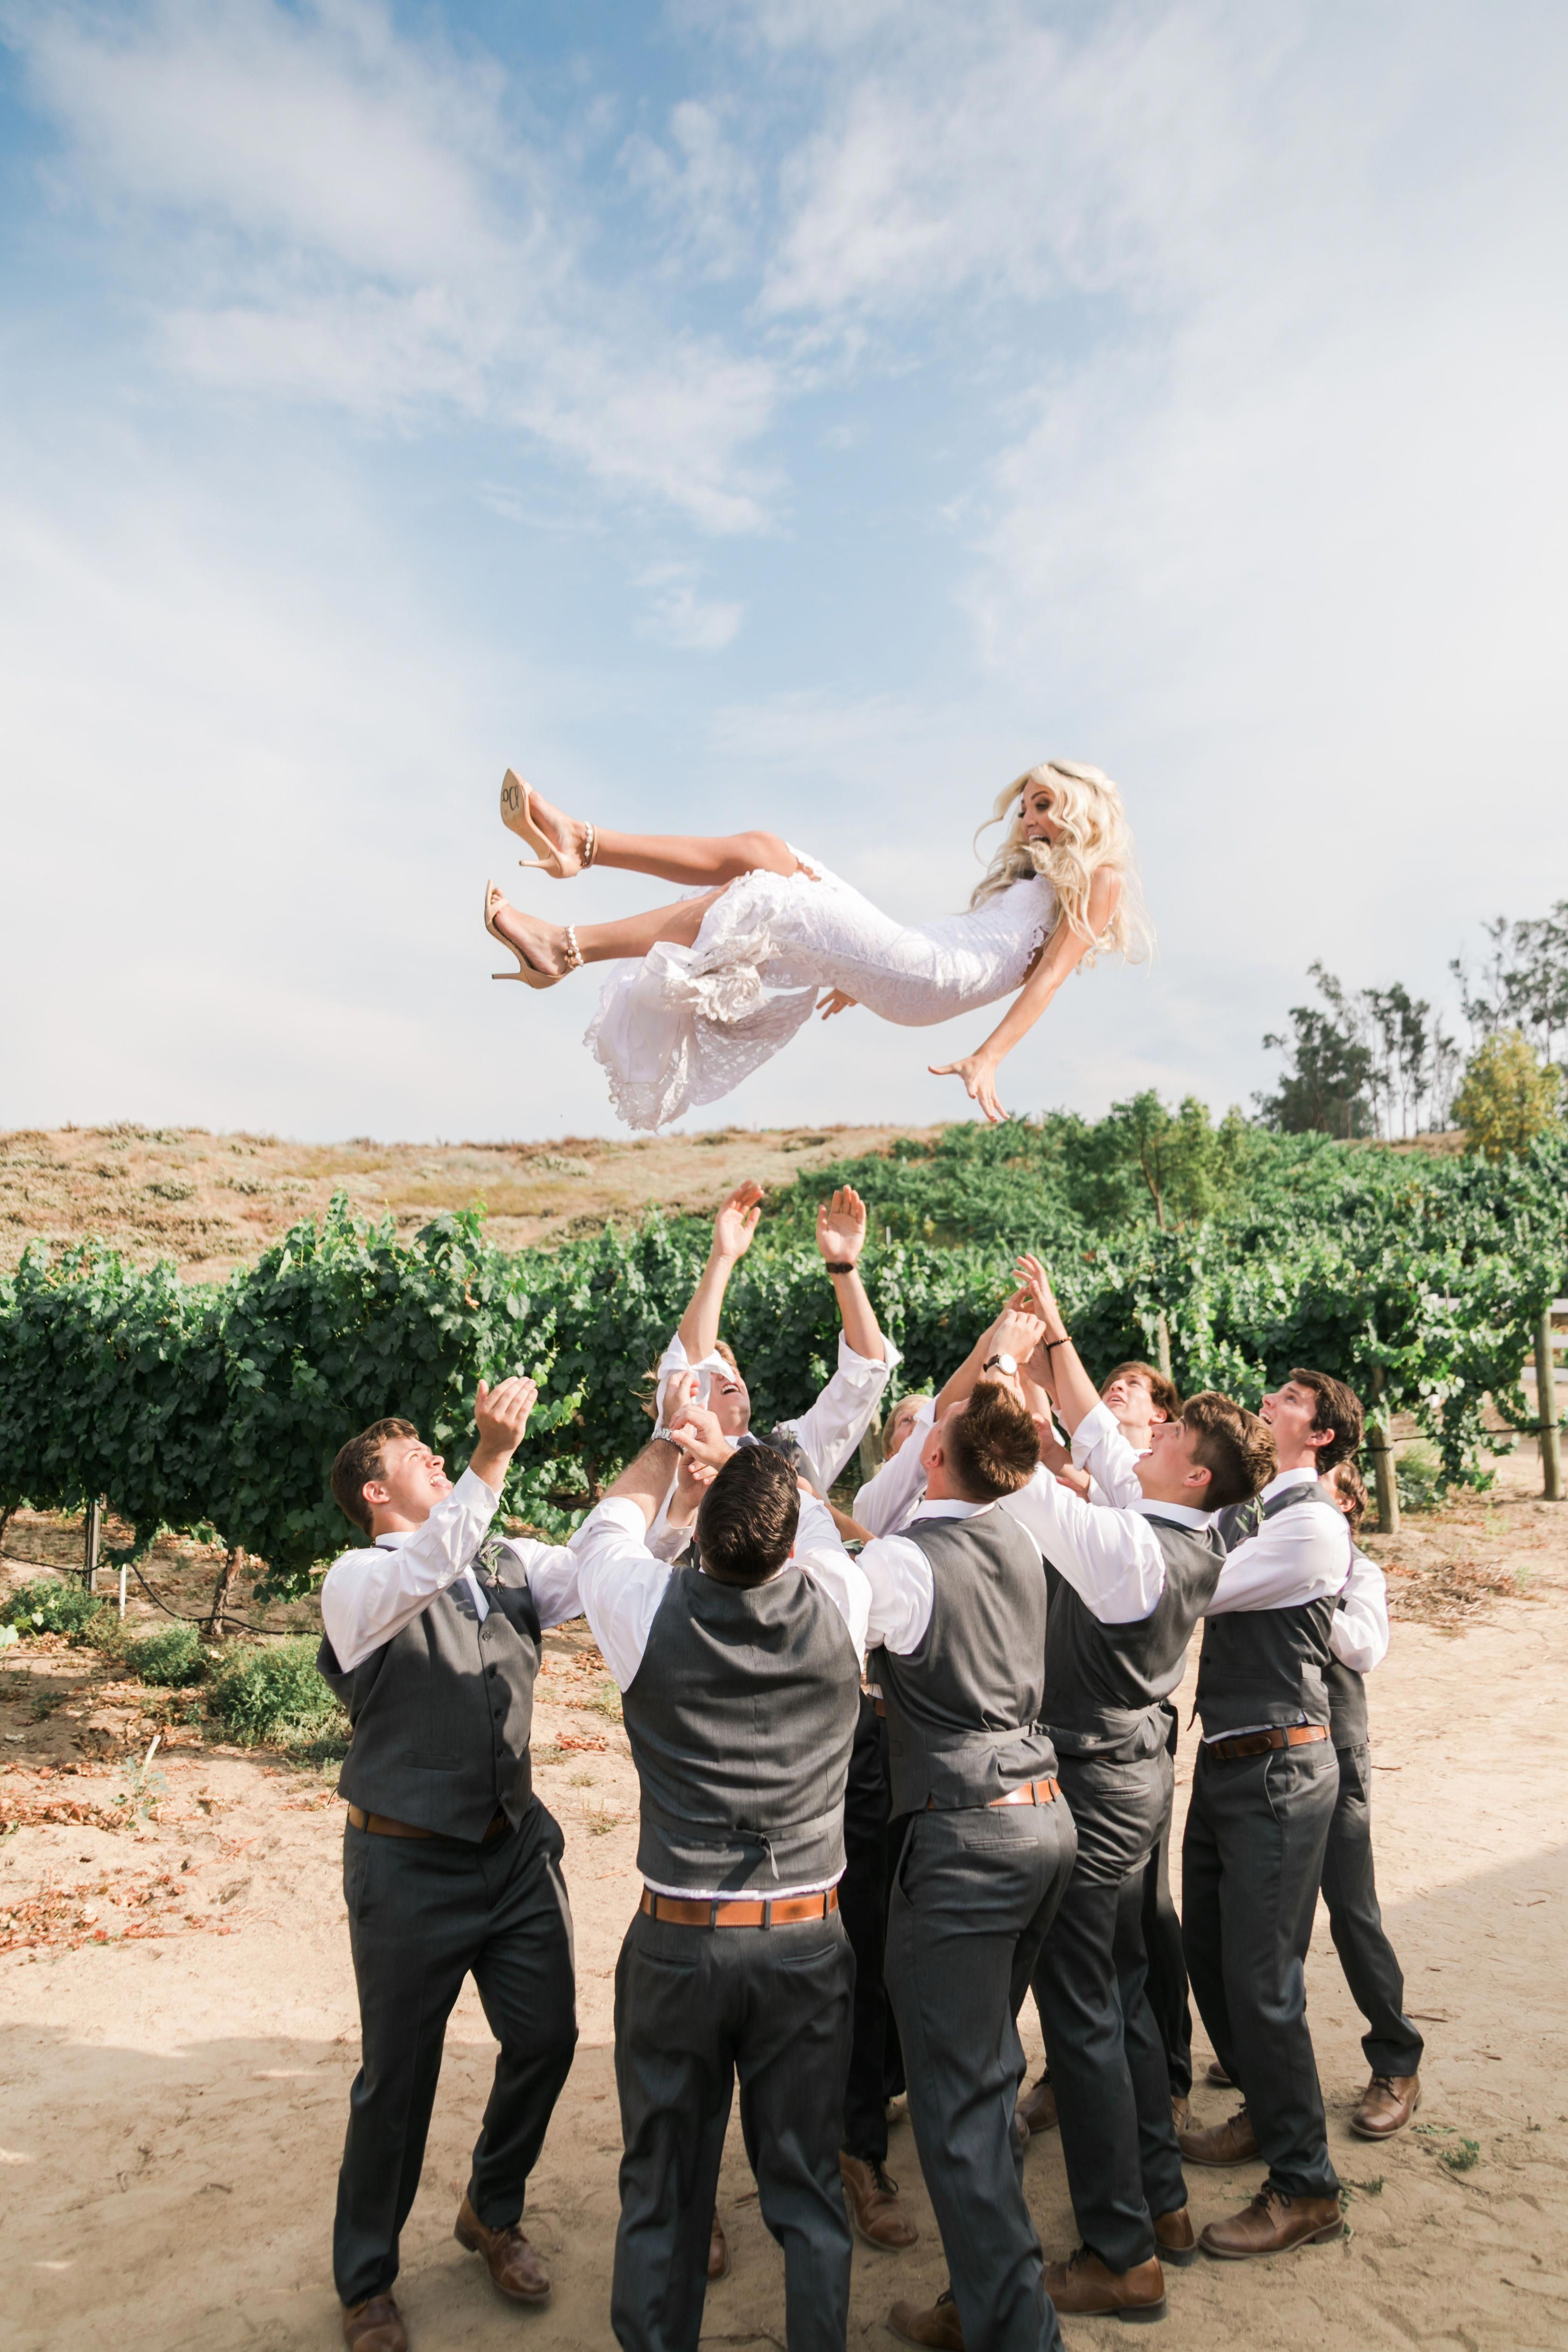 YouTube Stars, Savannah Soutas + Cole LaBrant's Wedding is part of Wedding photography - Savannah Soutas and Cole LaBrant share a look into their Temecula, California wedding designed with a bohorustic vibe